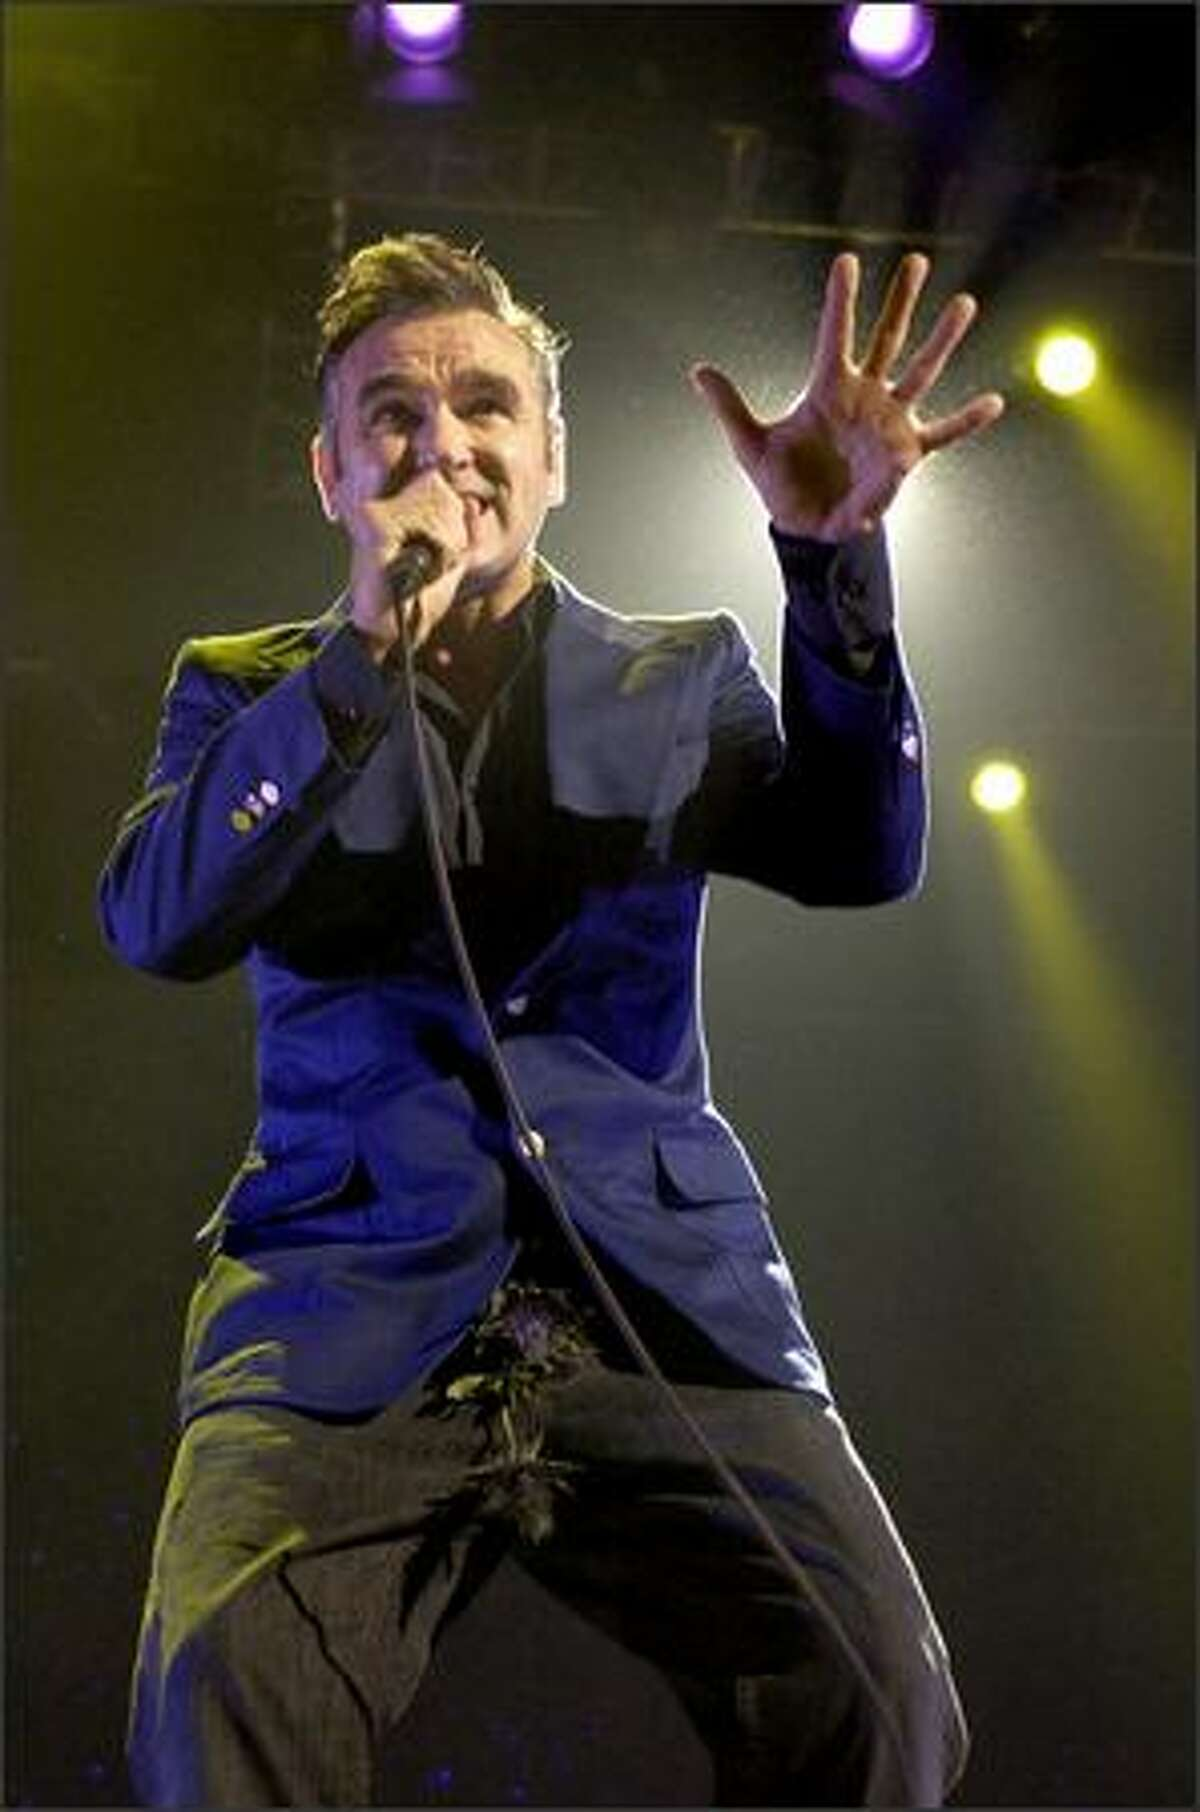 Lollapalooza organizers say not enough people were interested in seeing acts such as Morrissey, and canceled the entire tour claiming poor ticket sales.